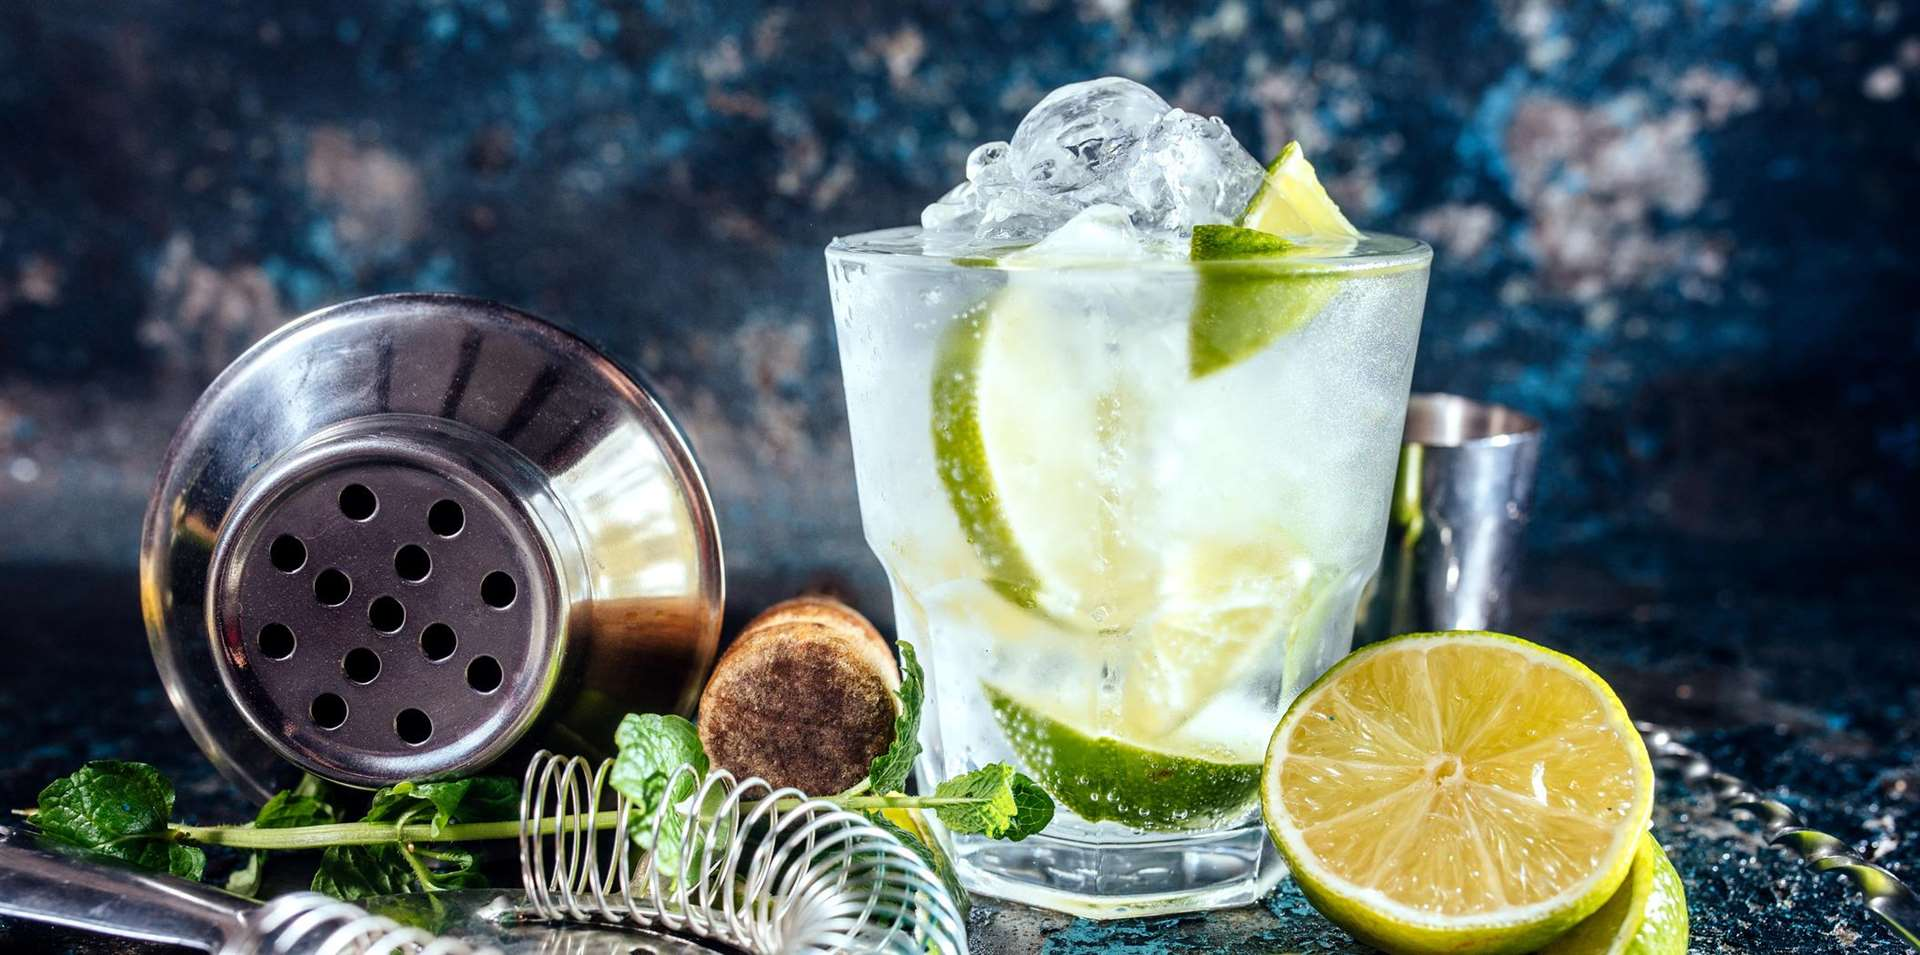 A gin tonic alcoholic cocktail with ice and mint. A taste of summer!